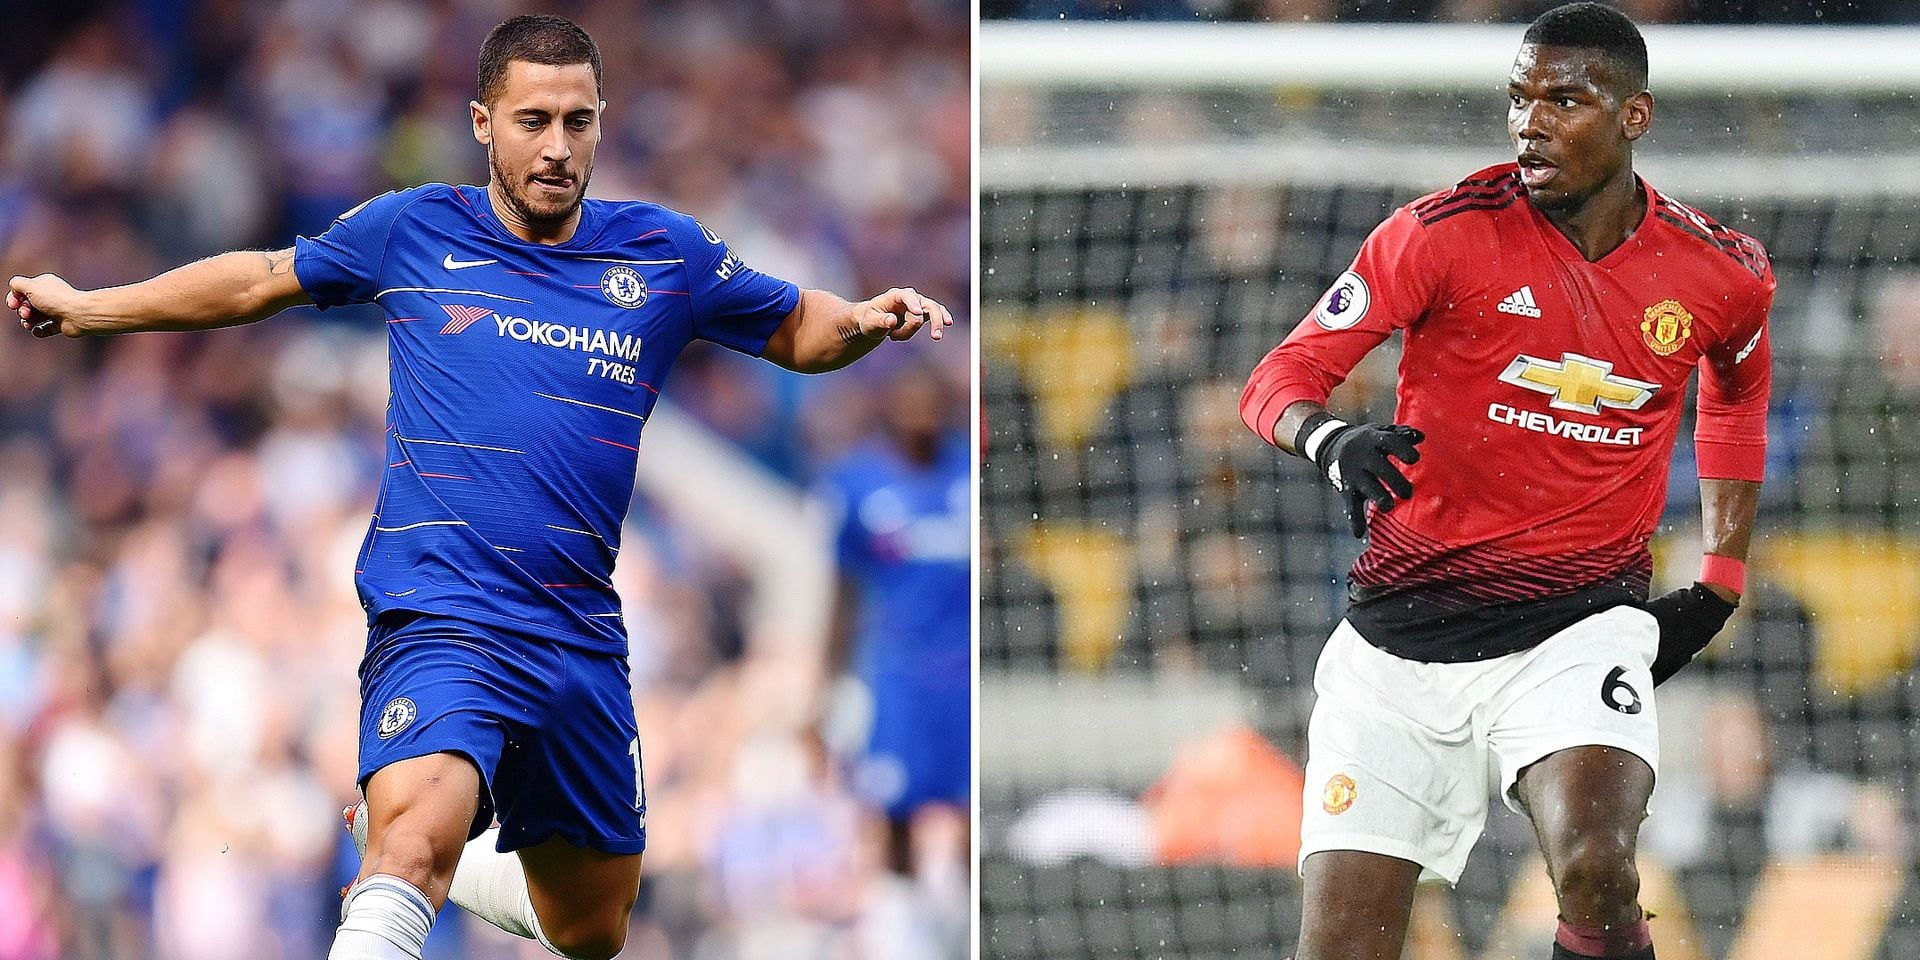 A combination of pictures created in London on April 27, 2019 shows Chelsea's Belgian midfielder Eden Hazard running with the ball at Stamford Bridge in London on September 15, 2018 and Manchester United's French midfielder Paul Pogba (R) at the Molineux stadium in Wolverhampton on April 2, 2019. - Manchester United and Chelsea's chances of a top four Premier League finish will depend largely on Paul Pogba or Eden Hazard inspiring their faltering sides over the finish line. (Photo by Paul ELLIS and Glyn KIRK / AFP) / RESTRICTED TO EDITORIAL USE. No use with unauthorized audio, video, data, fixture lists, club/league logos or 'live' services. Online in-match use limited to 120 images. An additional 40 images may be used in extra time. No video emulation. Social media in-match use limited to 120 images. An additional 40 images may be used in extra time. No use in betting publications, games or single club/league/player publications. /